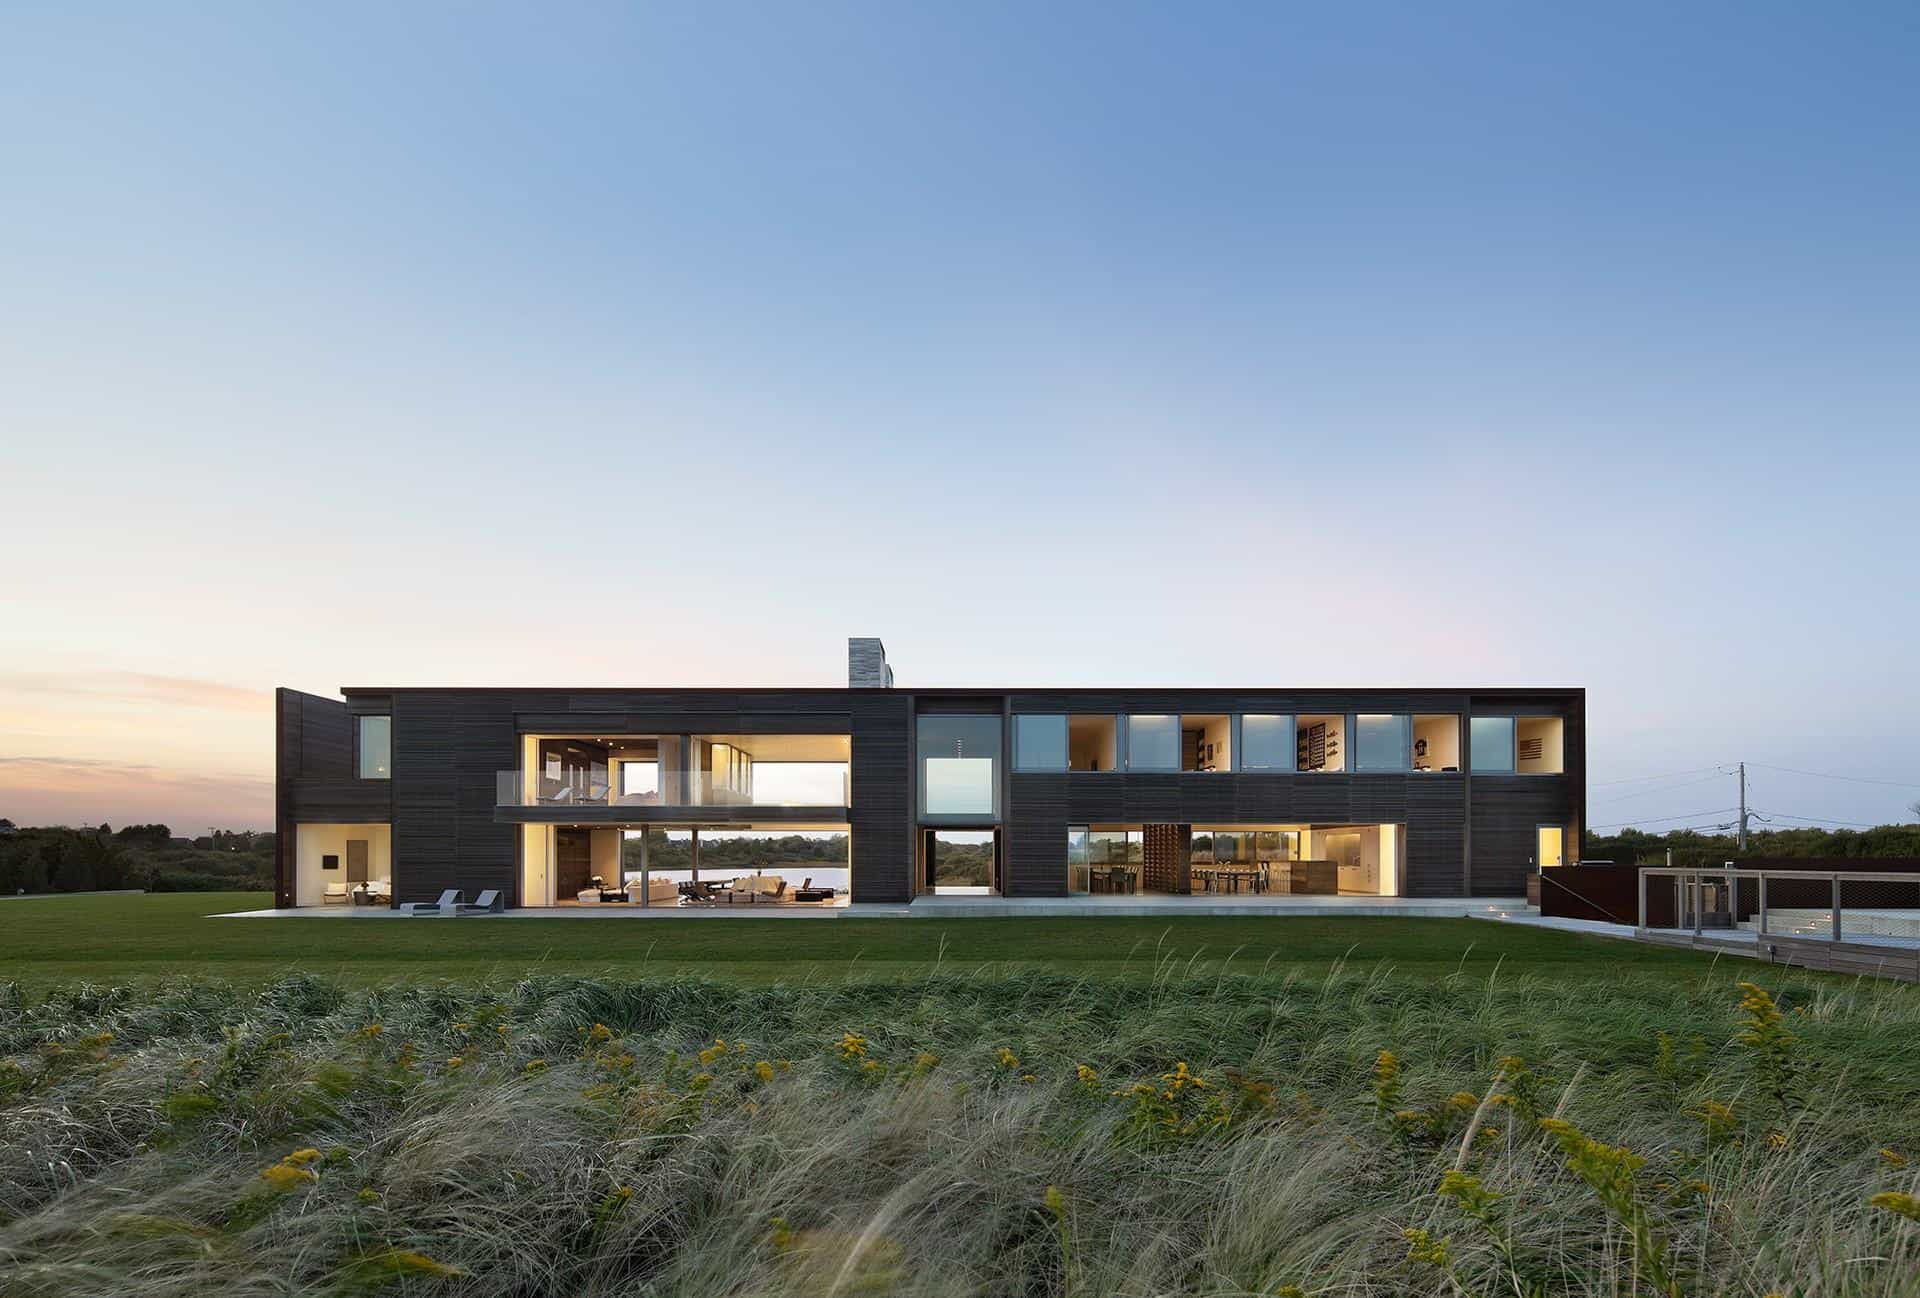 Vertical T Shaped Hilltop House Exposes Views On All 4 Sides